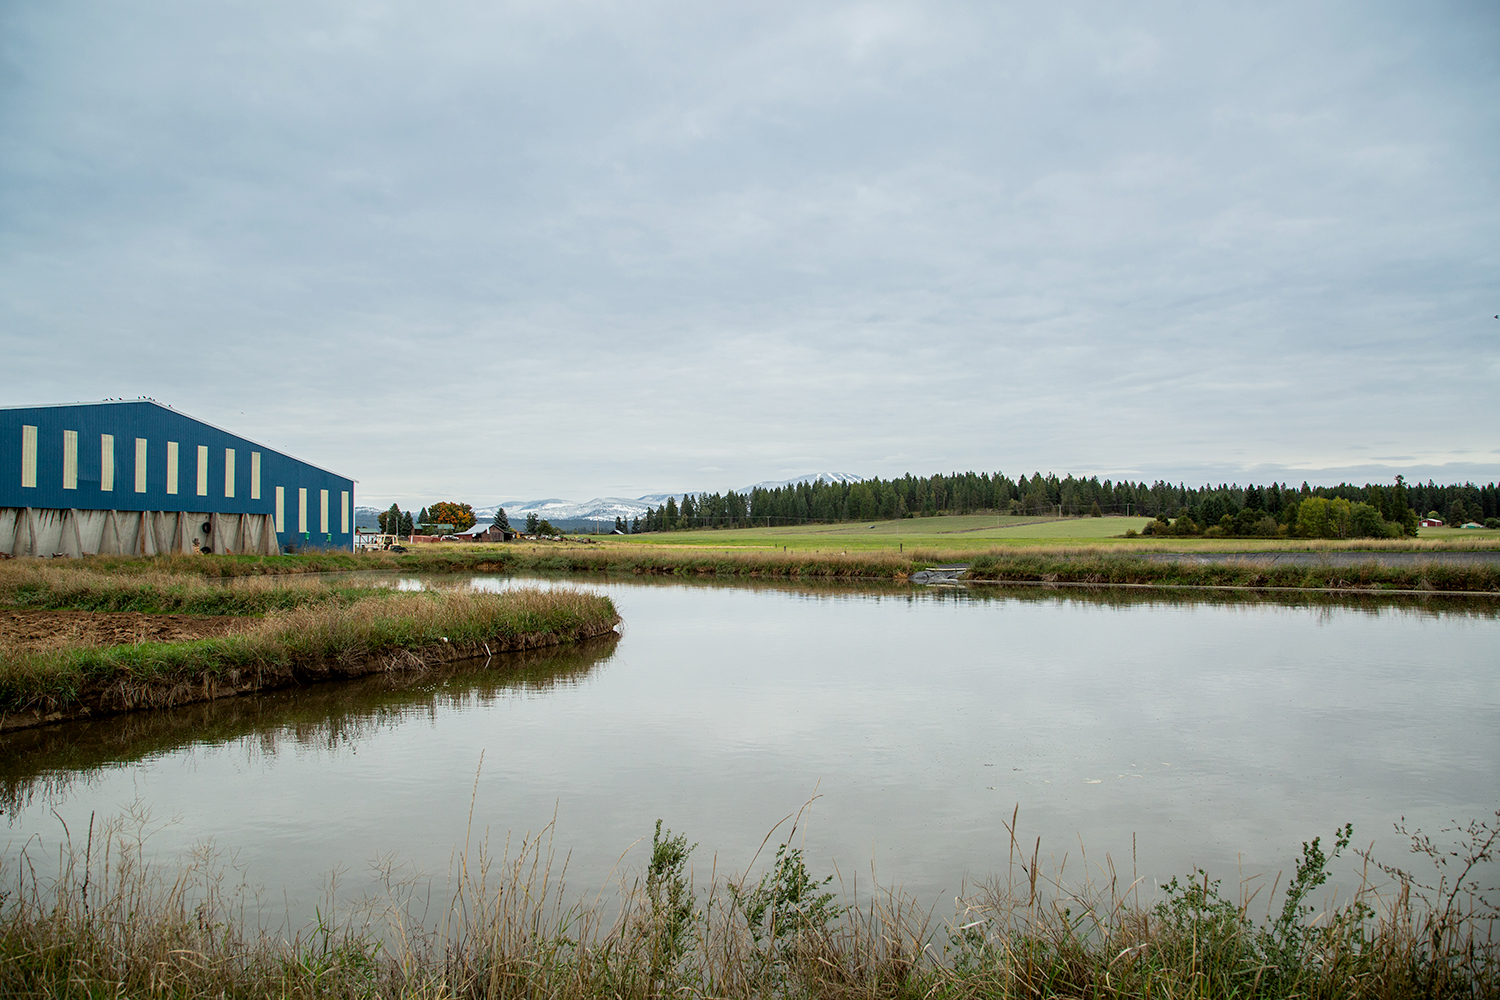 Water lagoon and barn on an overcast day